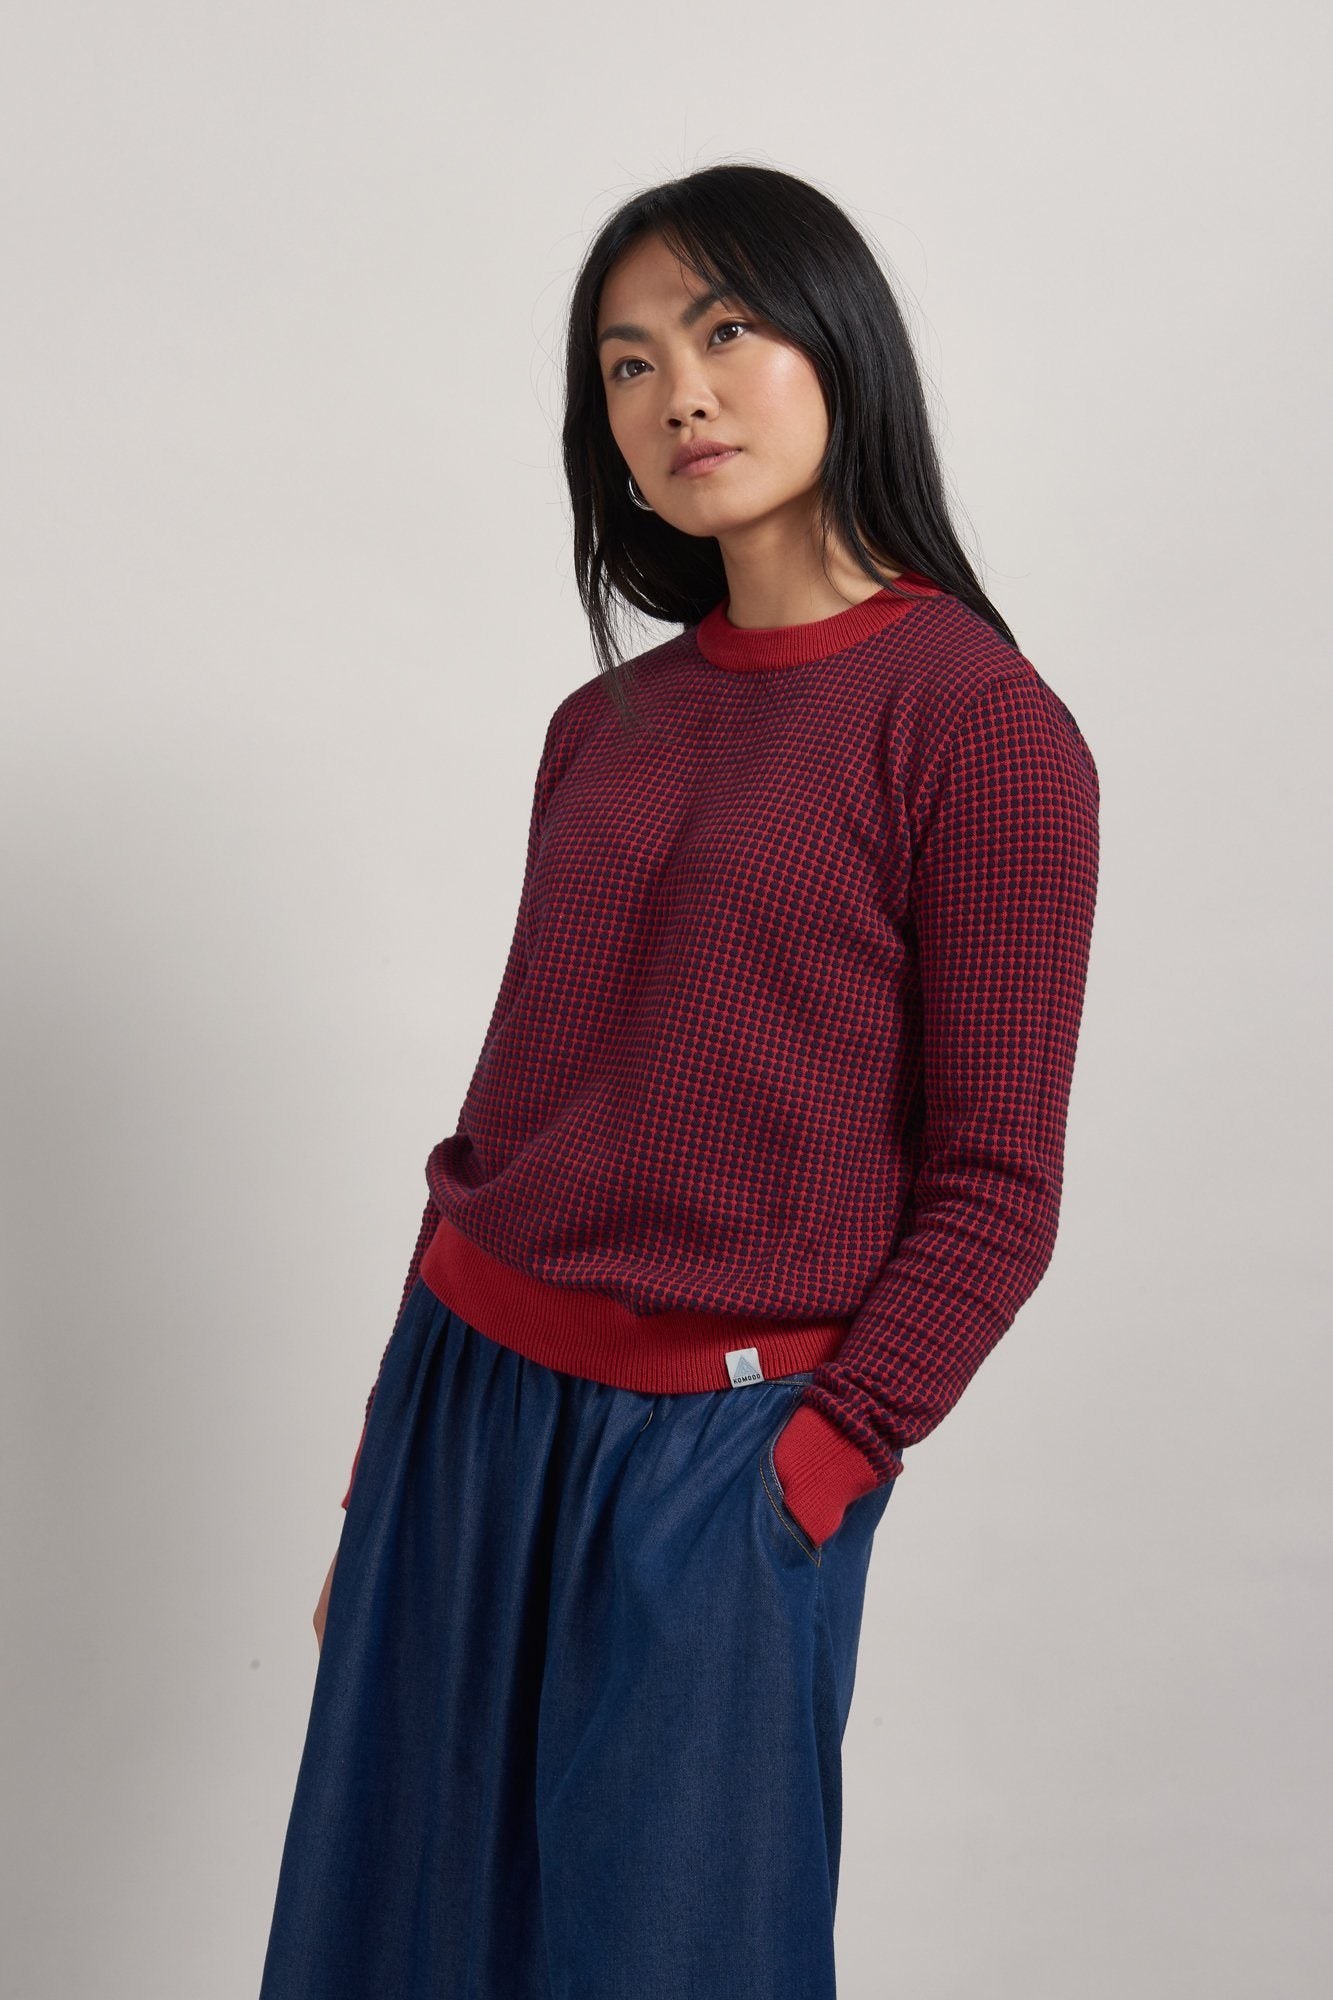 Jumper - HANNA Organic Cotton Jumper Navy & Burnt Red